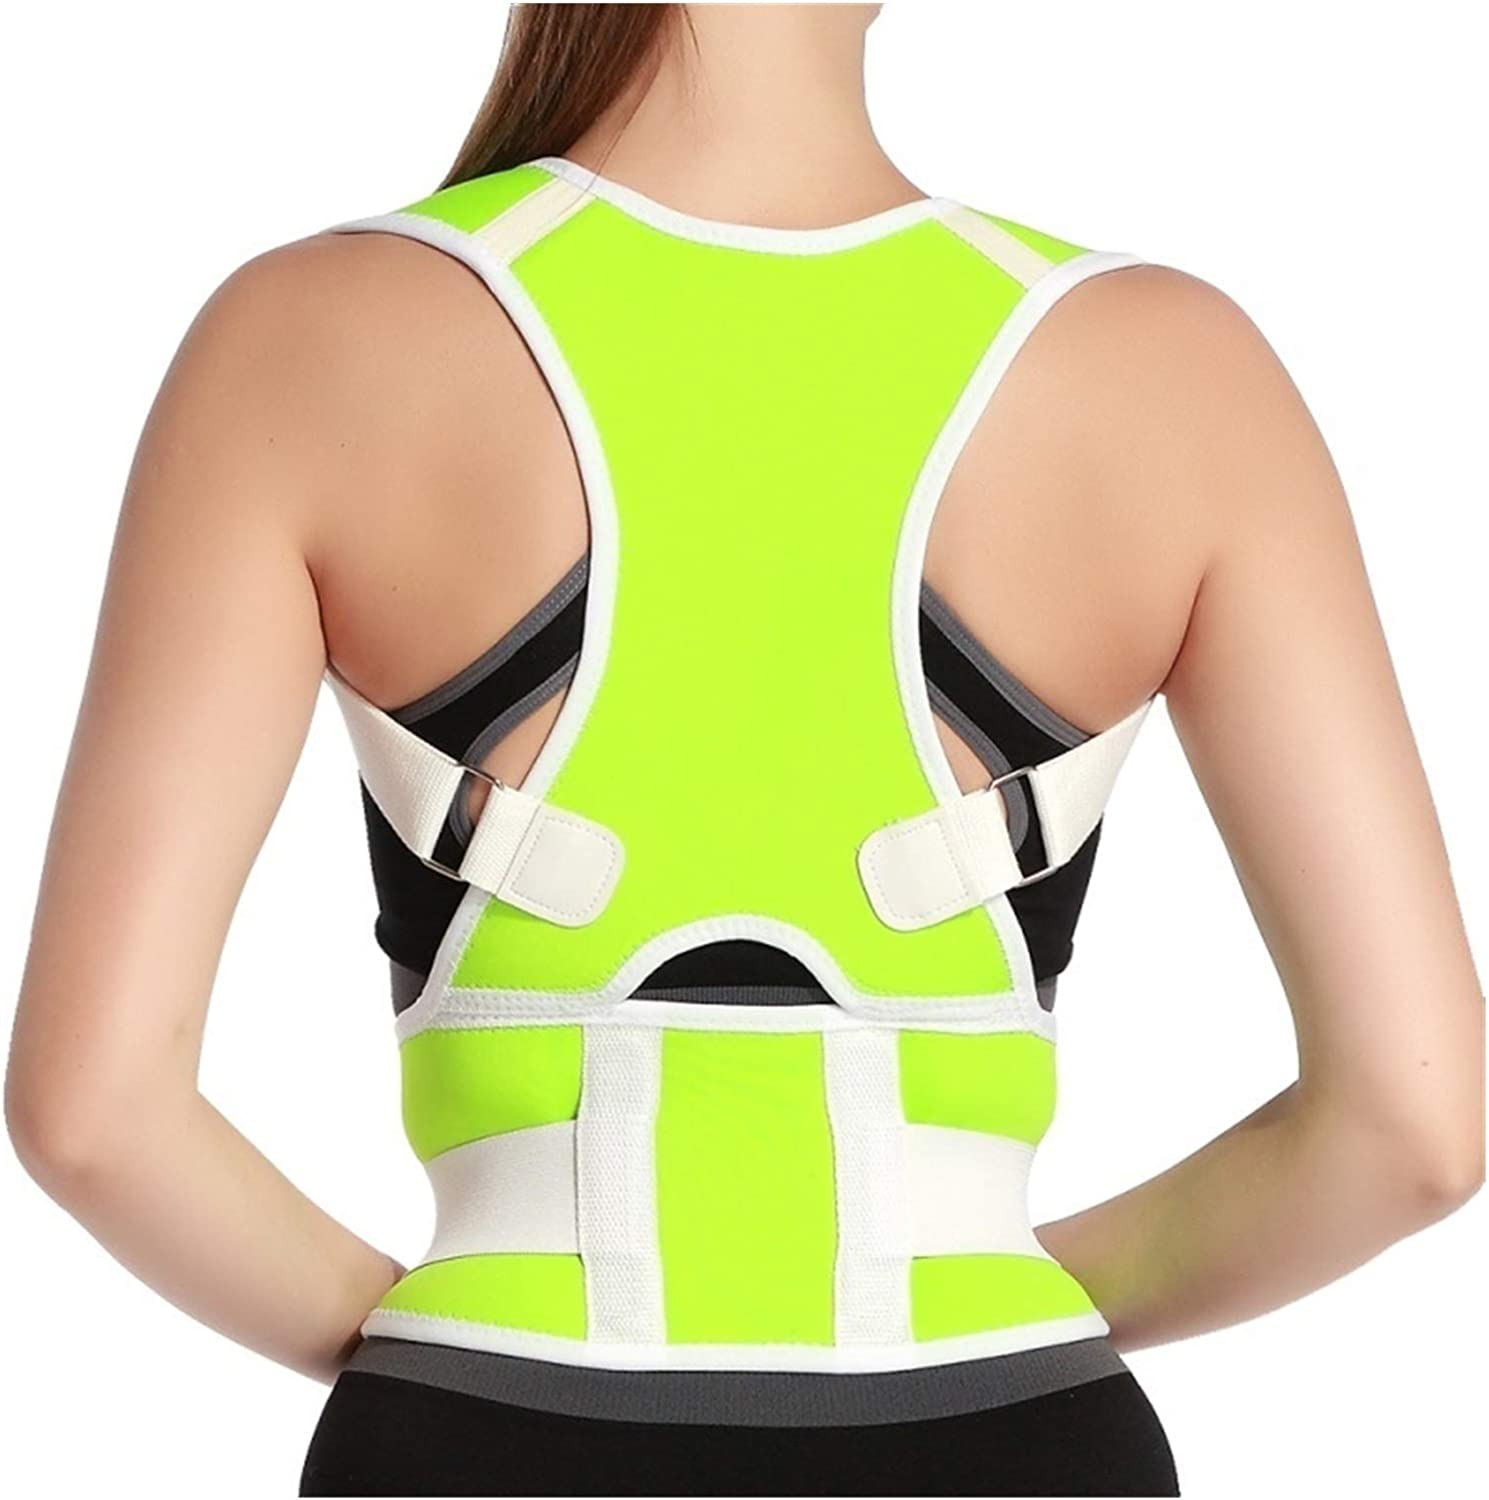 DSMYYXGS Men Omaha Mall OFFicial and Women Adjustable Corrector Posture Support Back